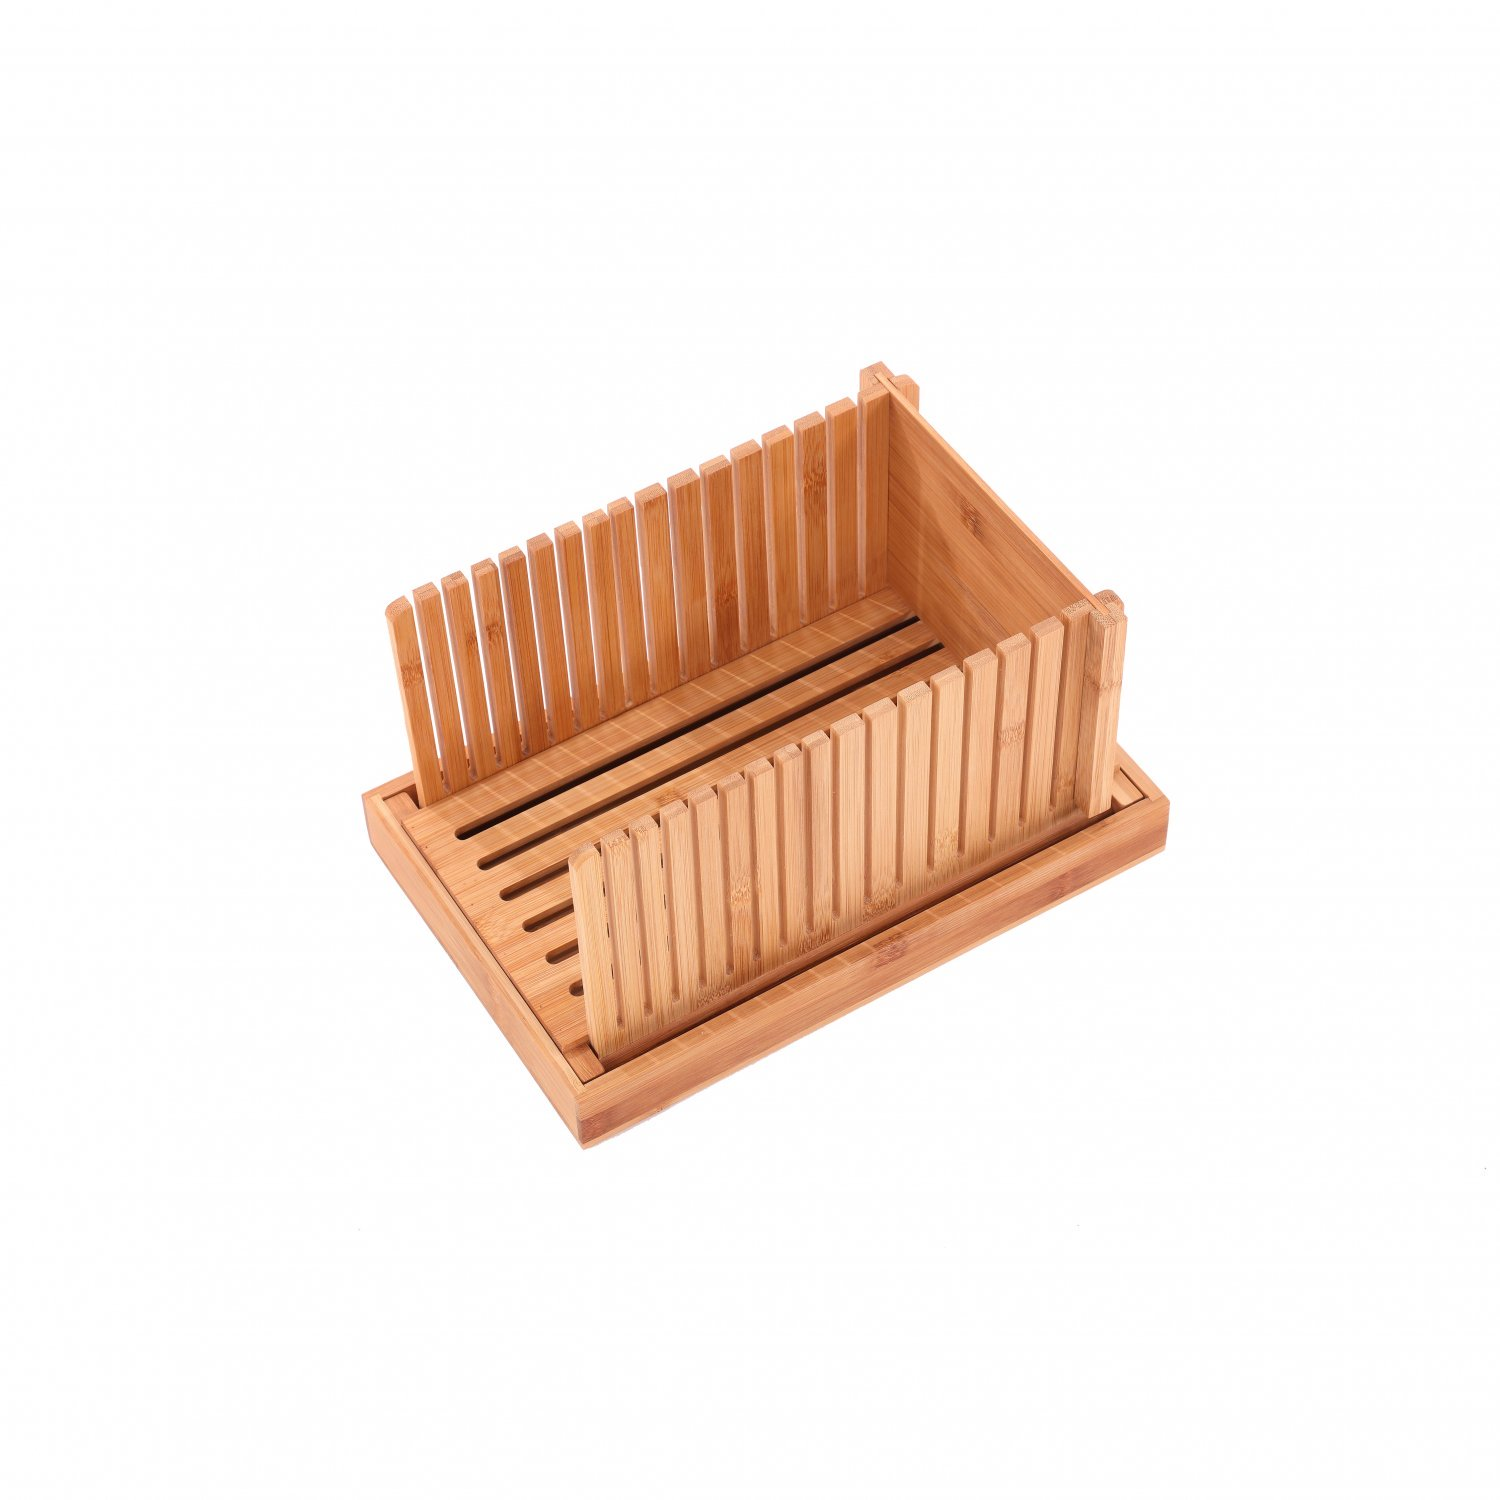 (RU26) Bamboo Wooden Bread Slicer Chopping Cutting Board with Crumb Catcher The bamboo bread...